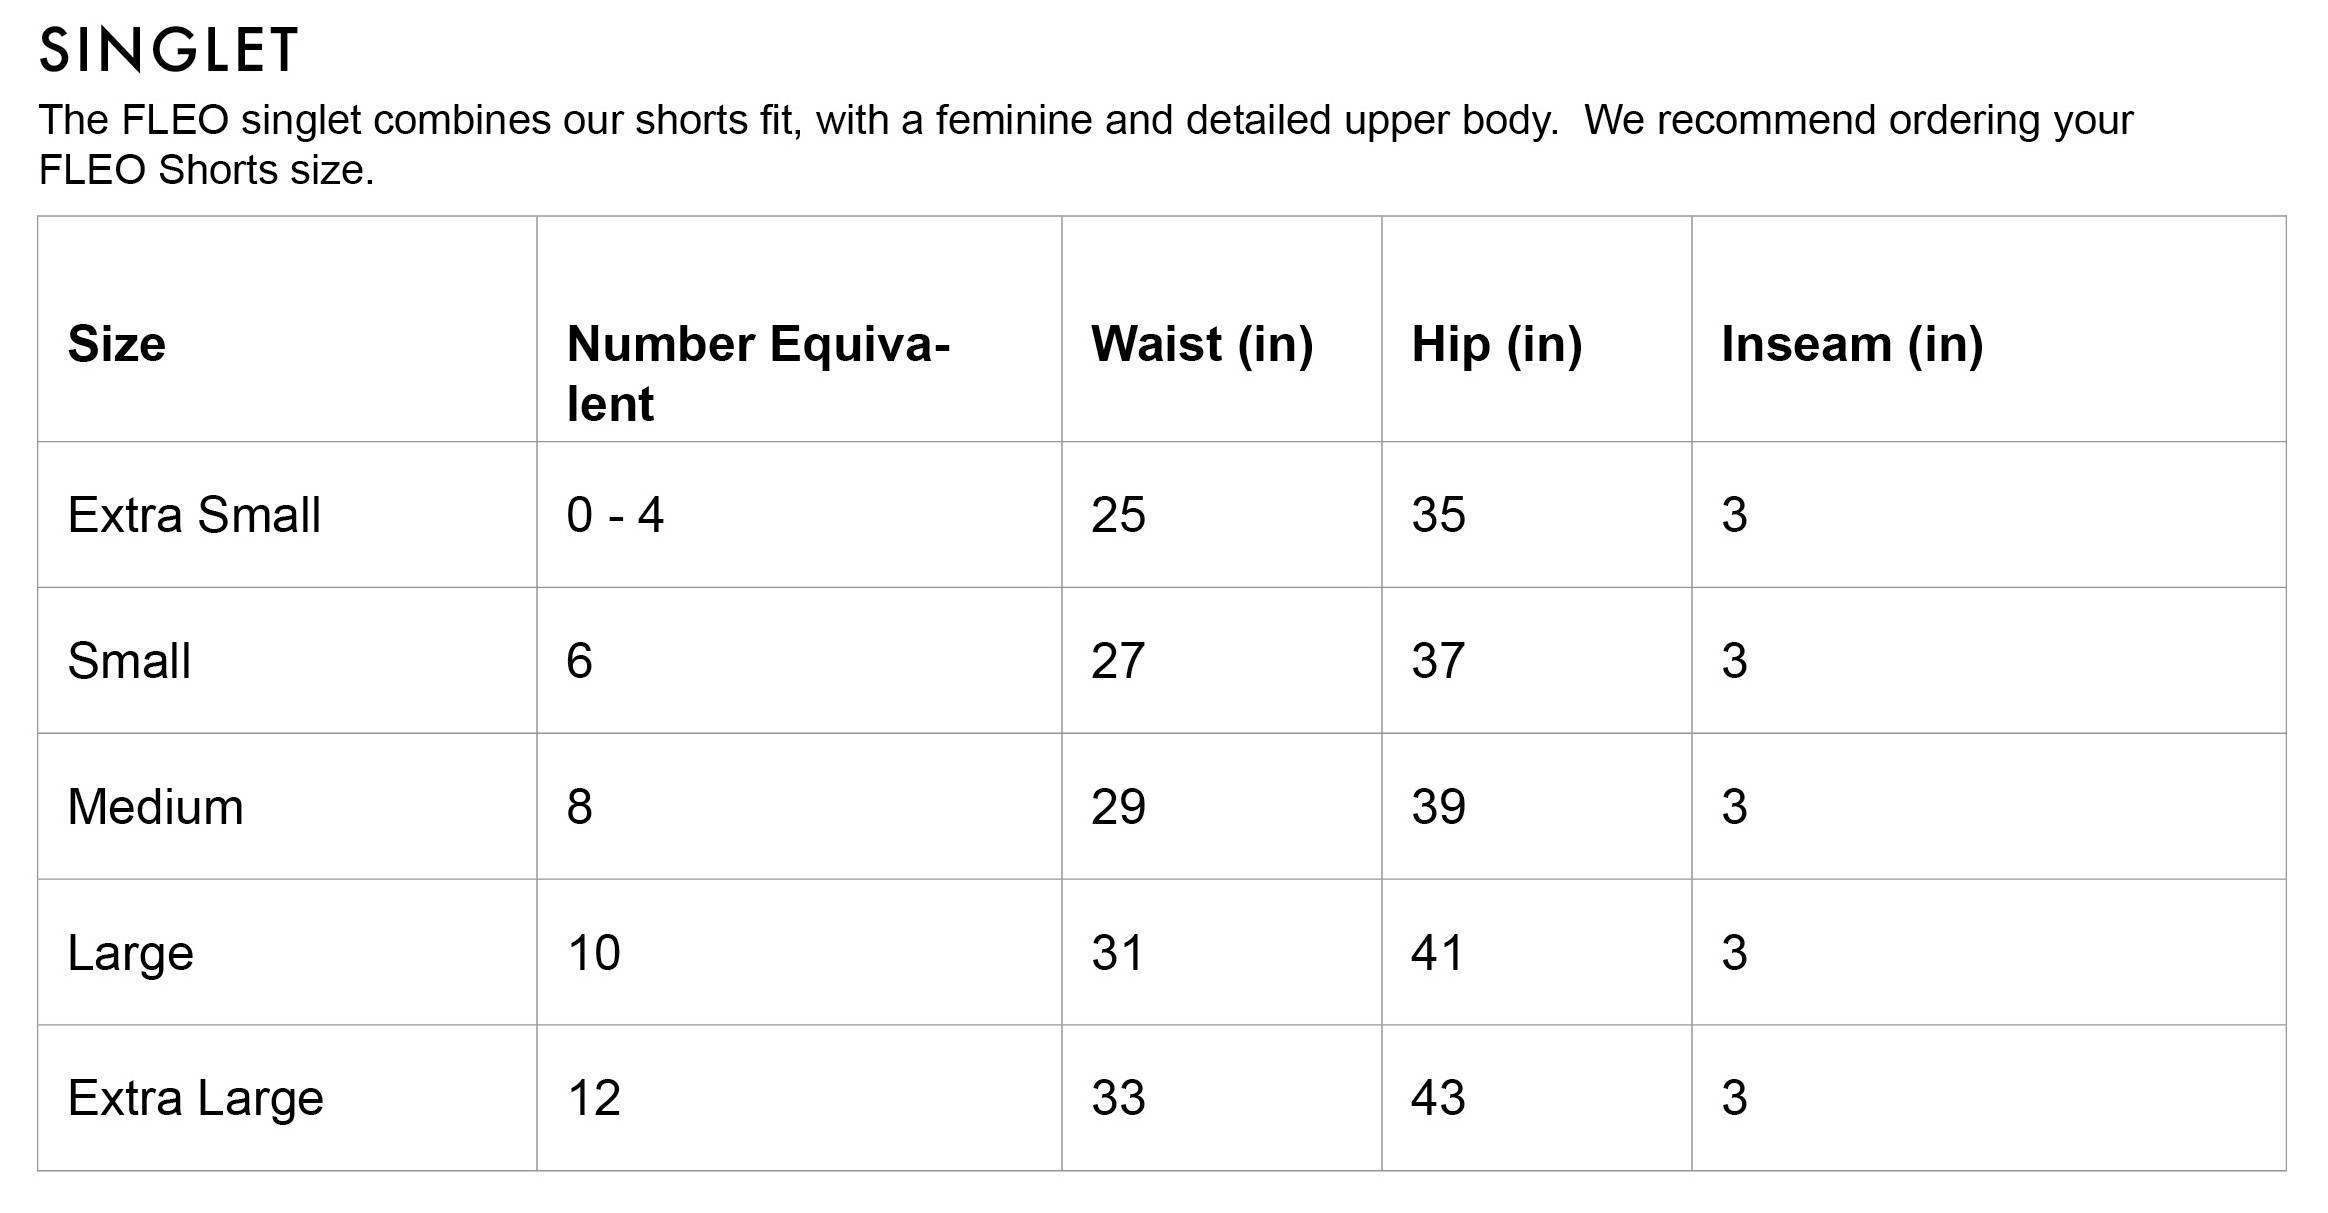 FLEO Weight Lifting Singlet Size Chart